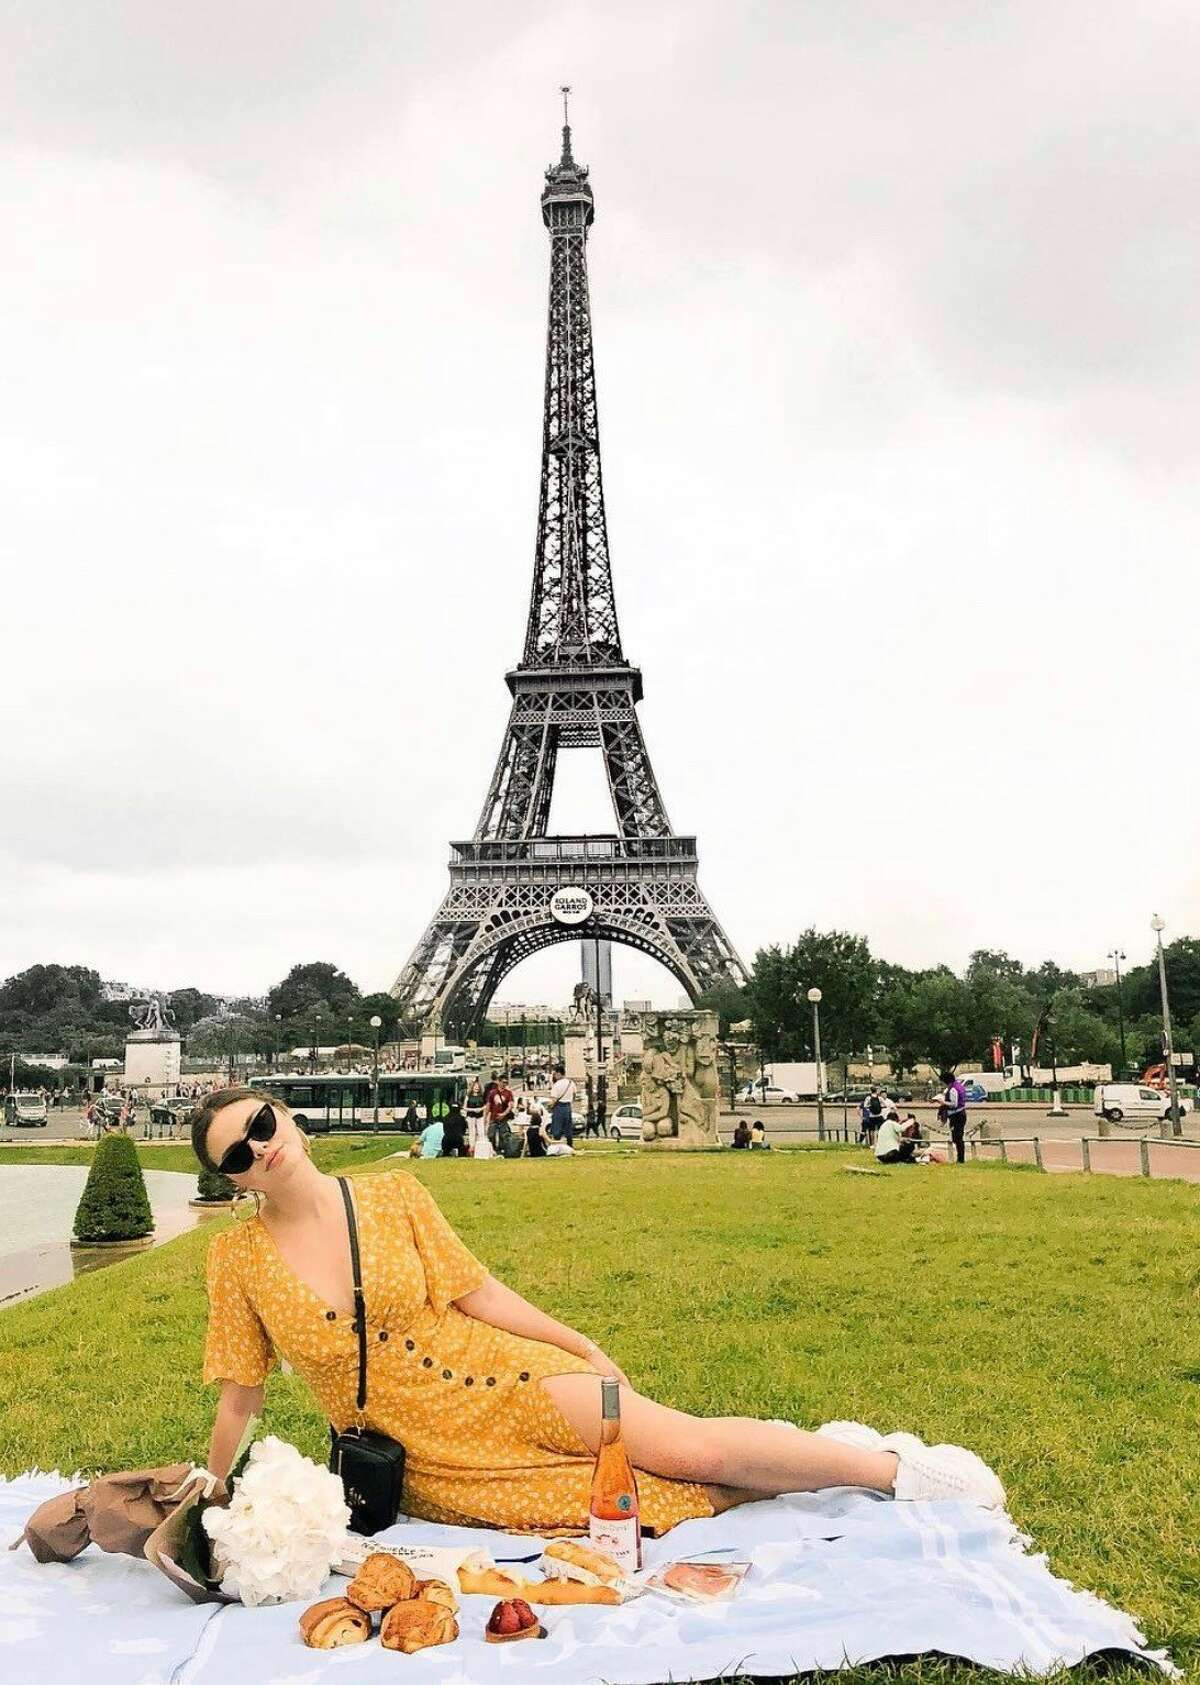 Inspired by this picnic right next to the Eiffel Tower, Suarez first got her inspiration to launch